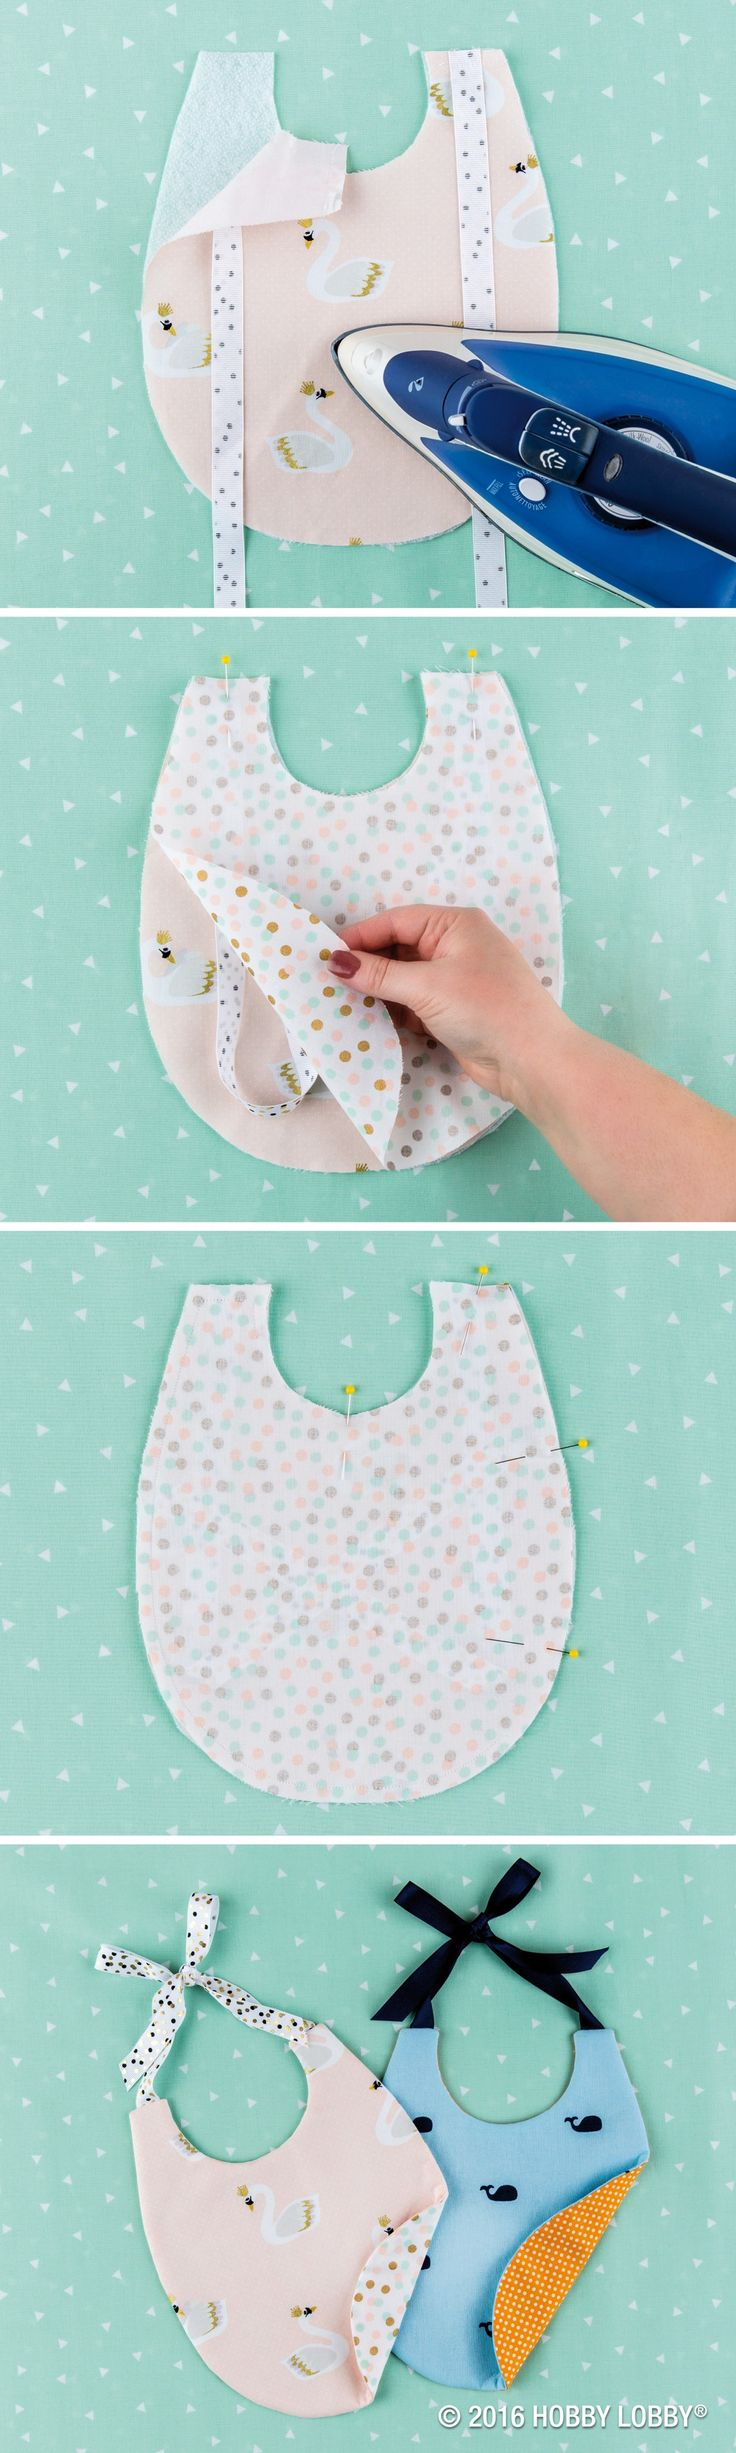 "Keep your little one in style with DIY bibs! 1) Cut 2 pieces of coordinating fabric & 1 piece of fusible fleece. 2) Sew 15"" of ribbon on each shoulder, & iron on fusible fleece to main fabric's wrong side, & align the main & second fabrics' right sides. 4) Sew 1/4"" from edge all the way around bib, leaving a 1 1/2"" opening. 4) Trim corners & make small cuts around bib. Do not clip the sew line. 5) Turn bib inside out, press & hand sew the open space to finish. Refer to Simplicity pattern…"